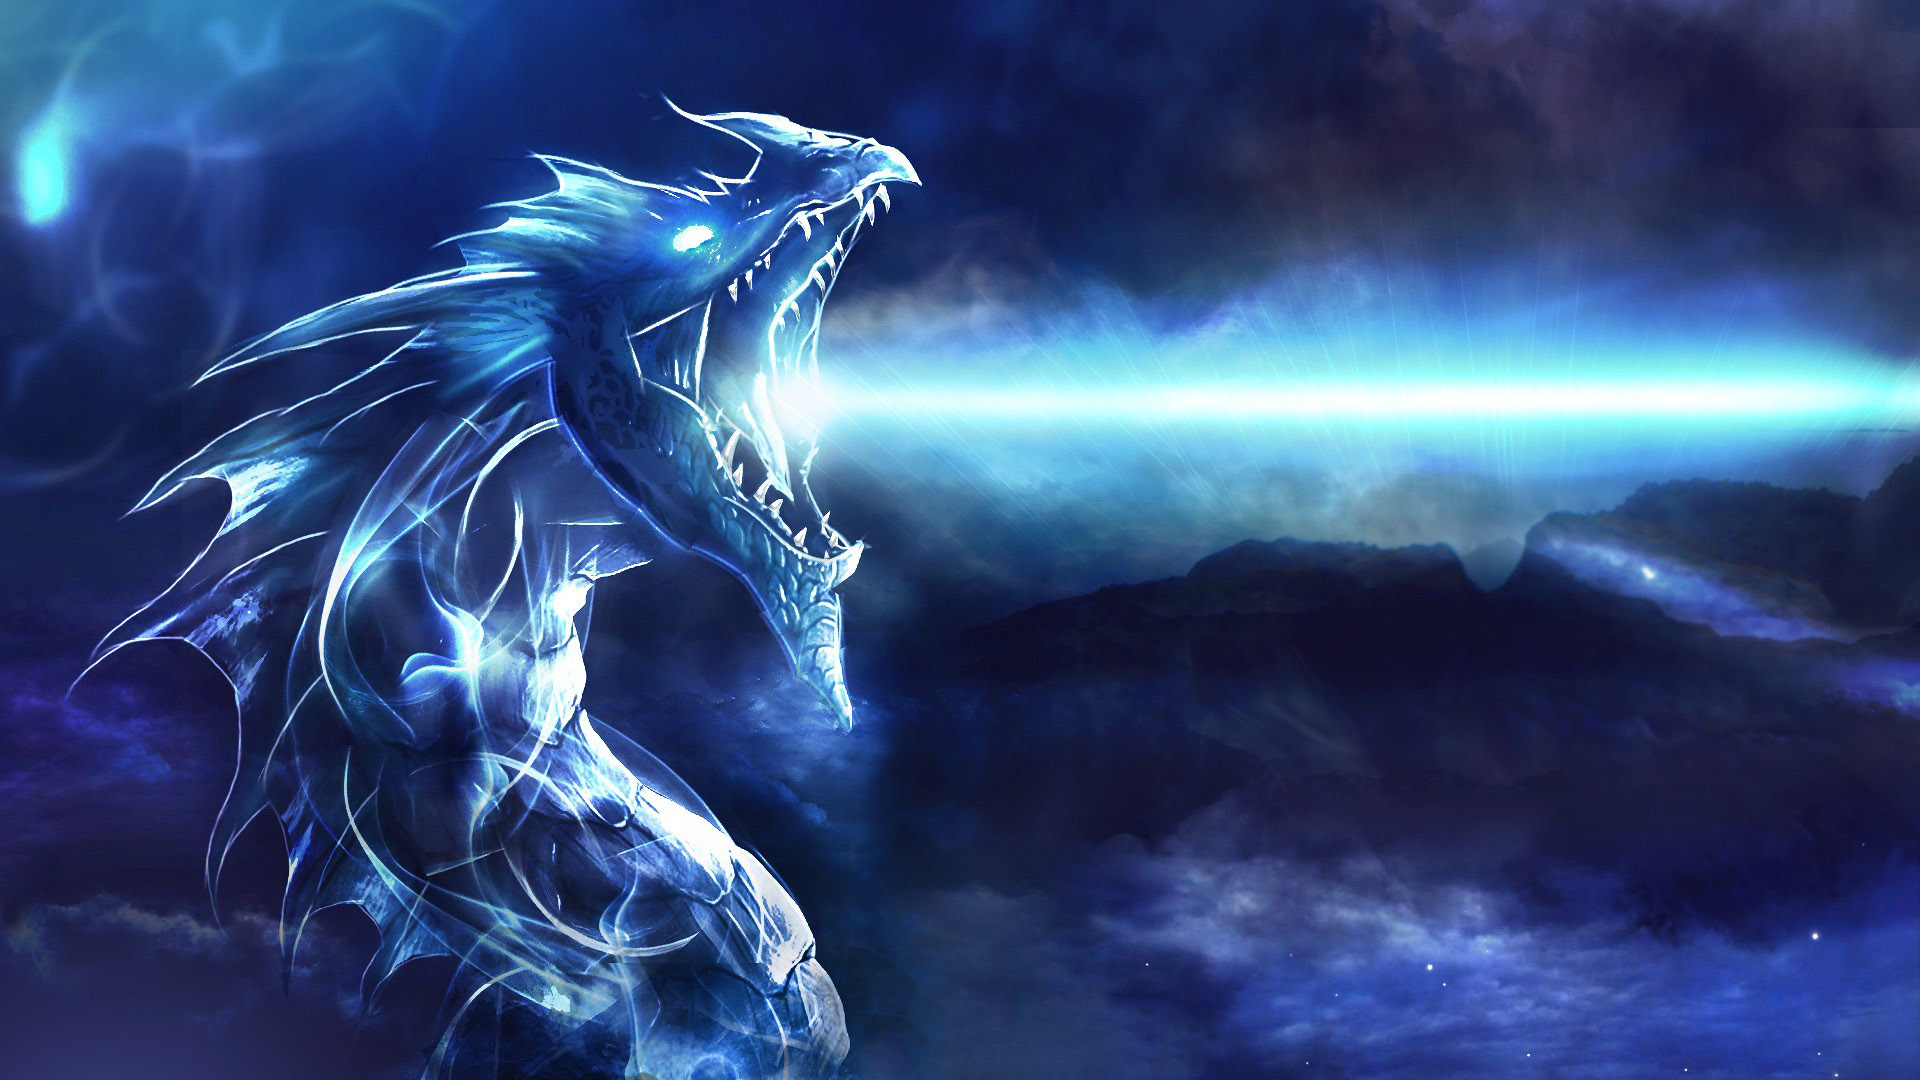 Cool dragon wallpaper sf wallpaper cool dragon wallpaper page 1 thecheapjerseys Image collections